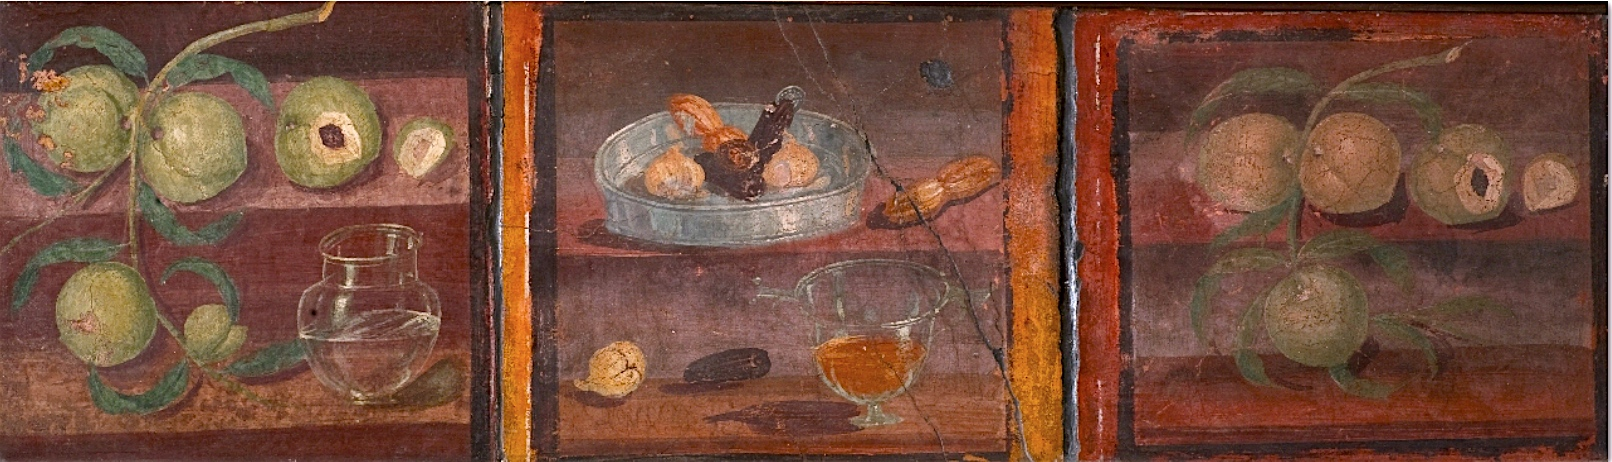 Still Life with Peaches (left), two dates, a silver tray with prunes, dried figs and dates with a glass of red wine (center), and branch of Peaches, Fourth Style wall painting from Herculaneum, Italy, c. 62-69 C.E., fresco, 14 x 13 1/2 inches (Archaeological Museum, Naples)